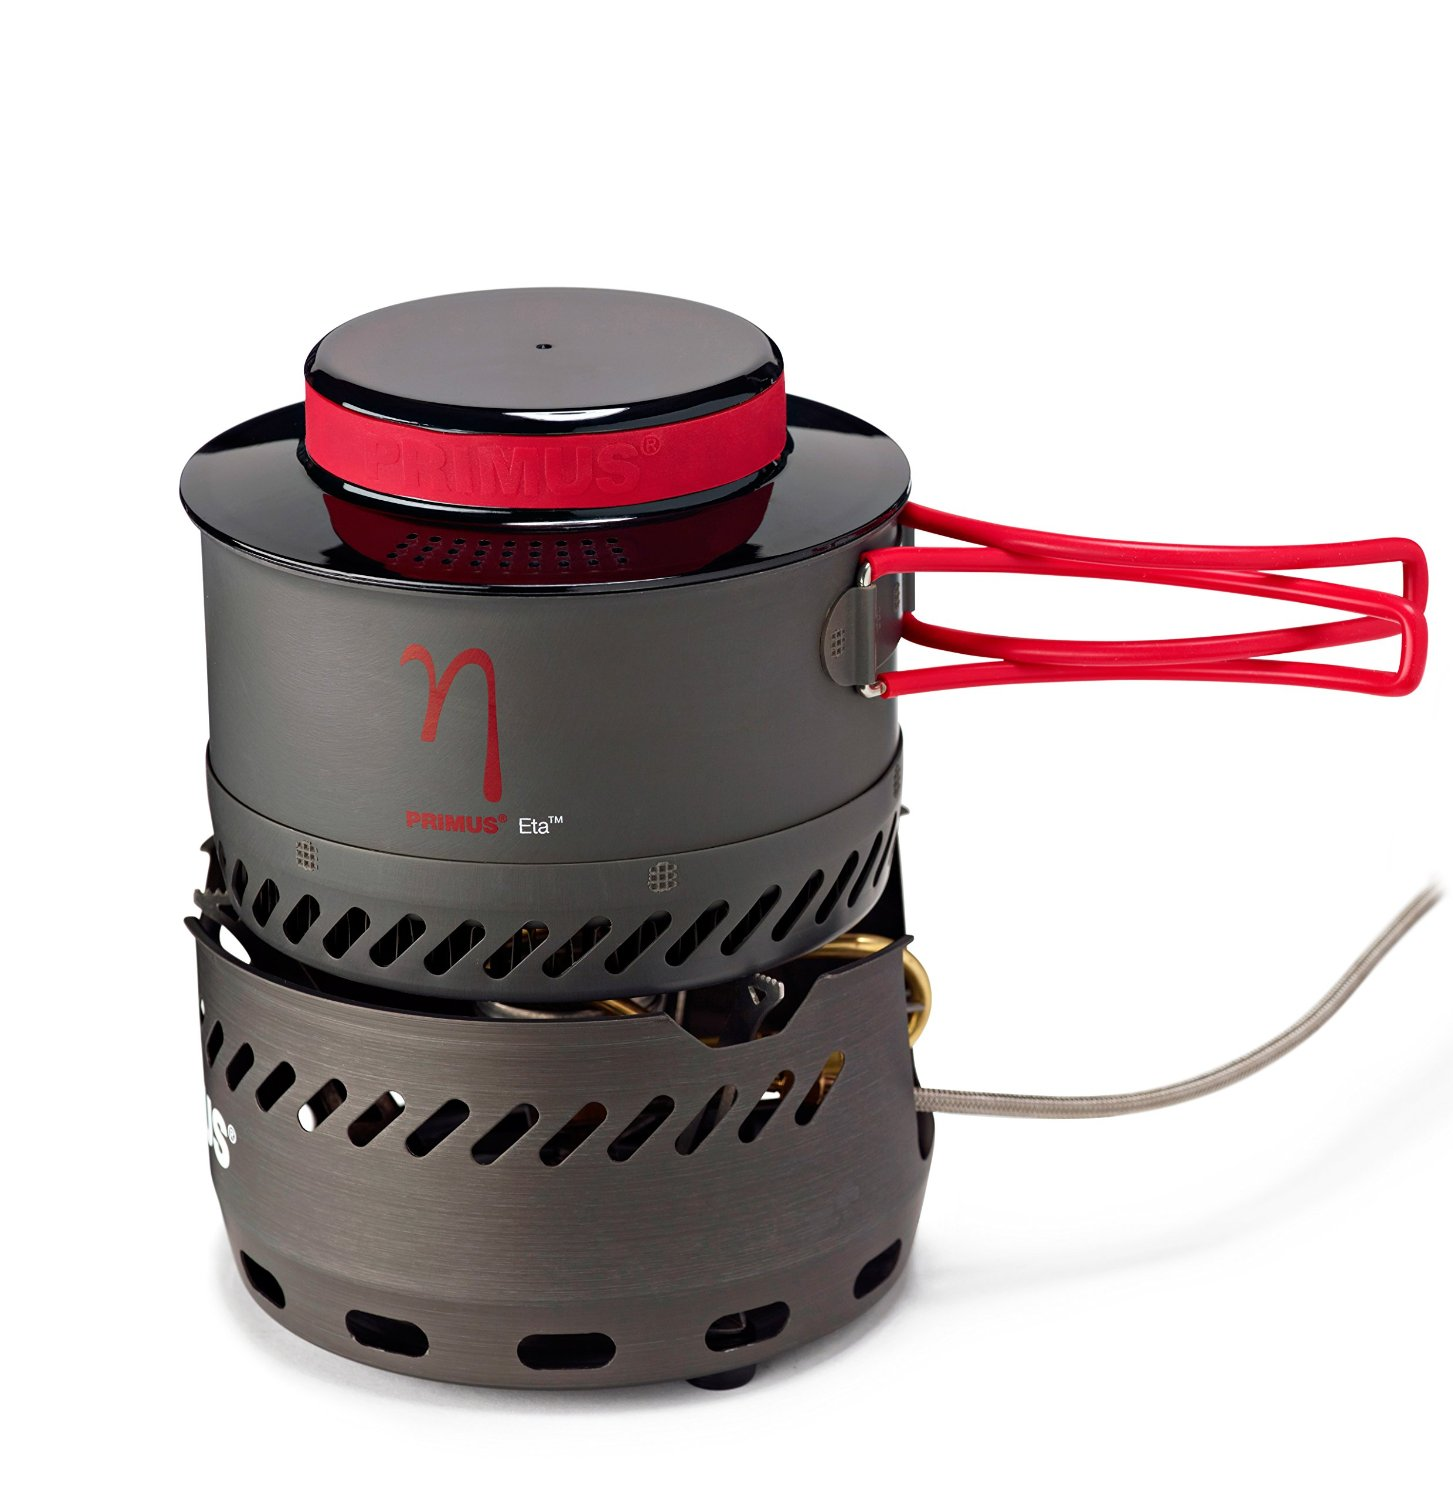 Primus Eta Spider Review Camping Stoves And Other Gear